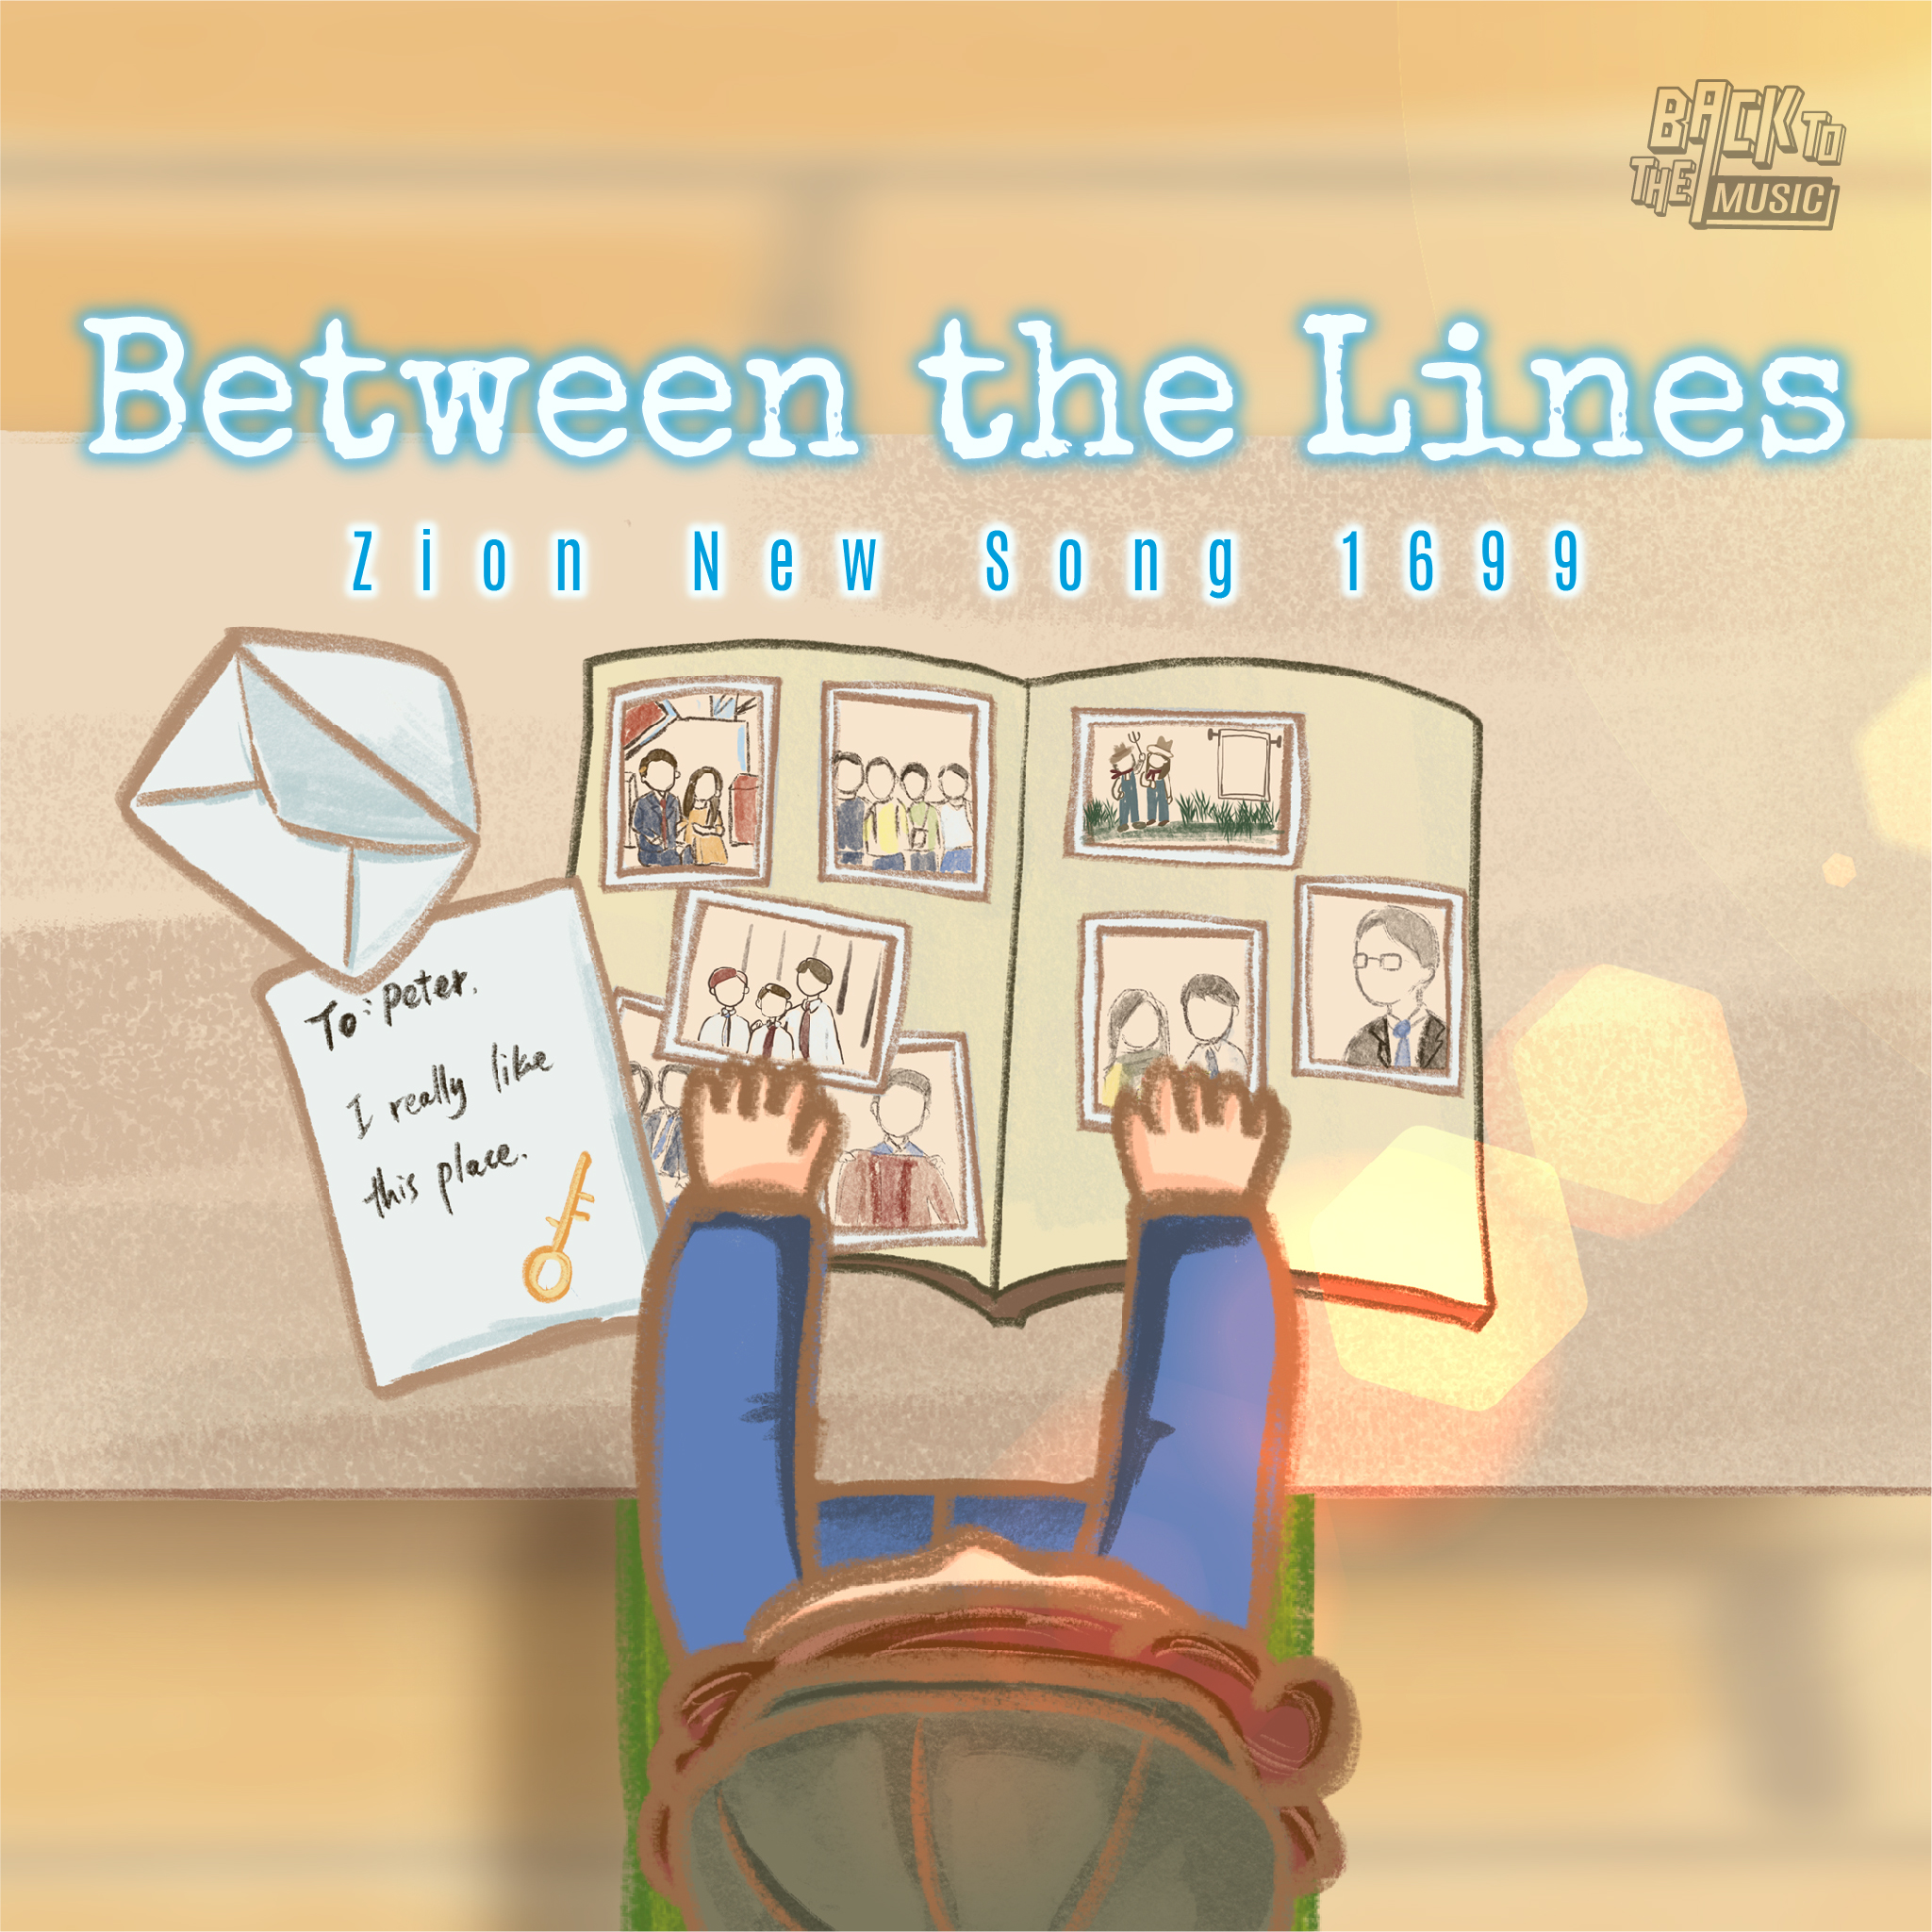 【Between the Lines】| Music | Praise the Lord 2021 | Back To The Music